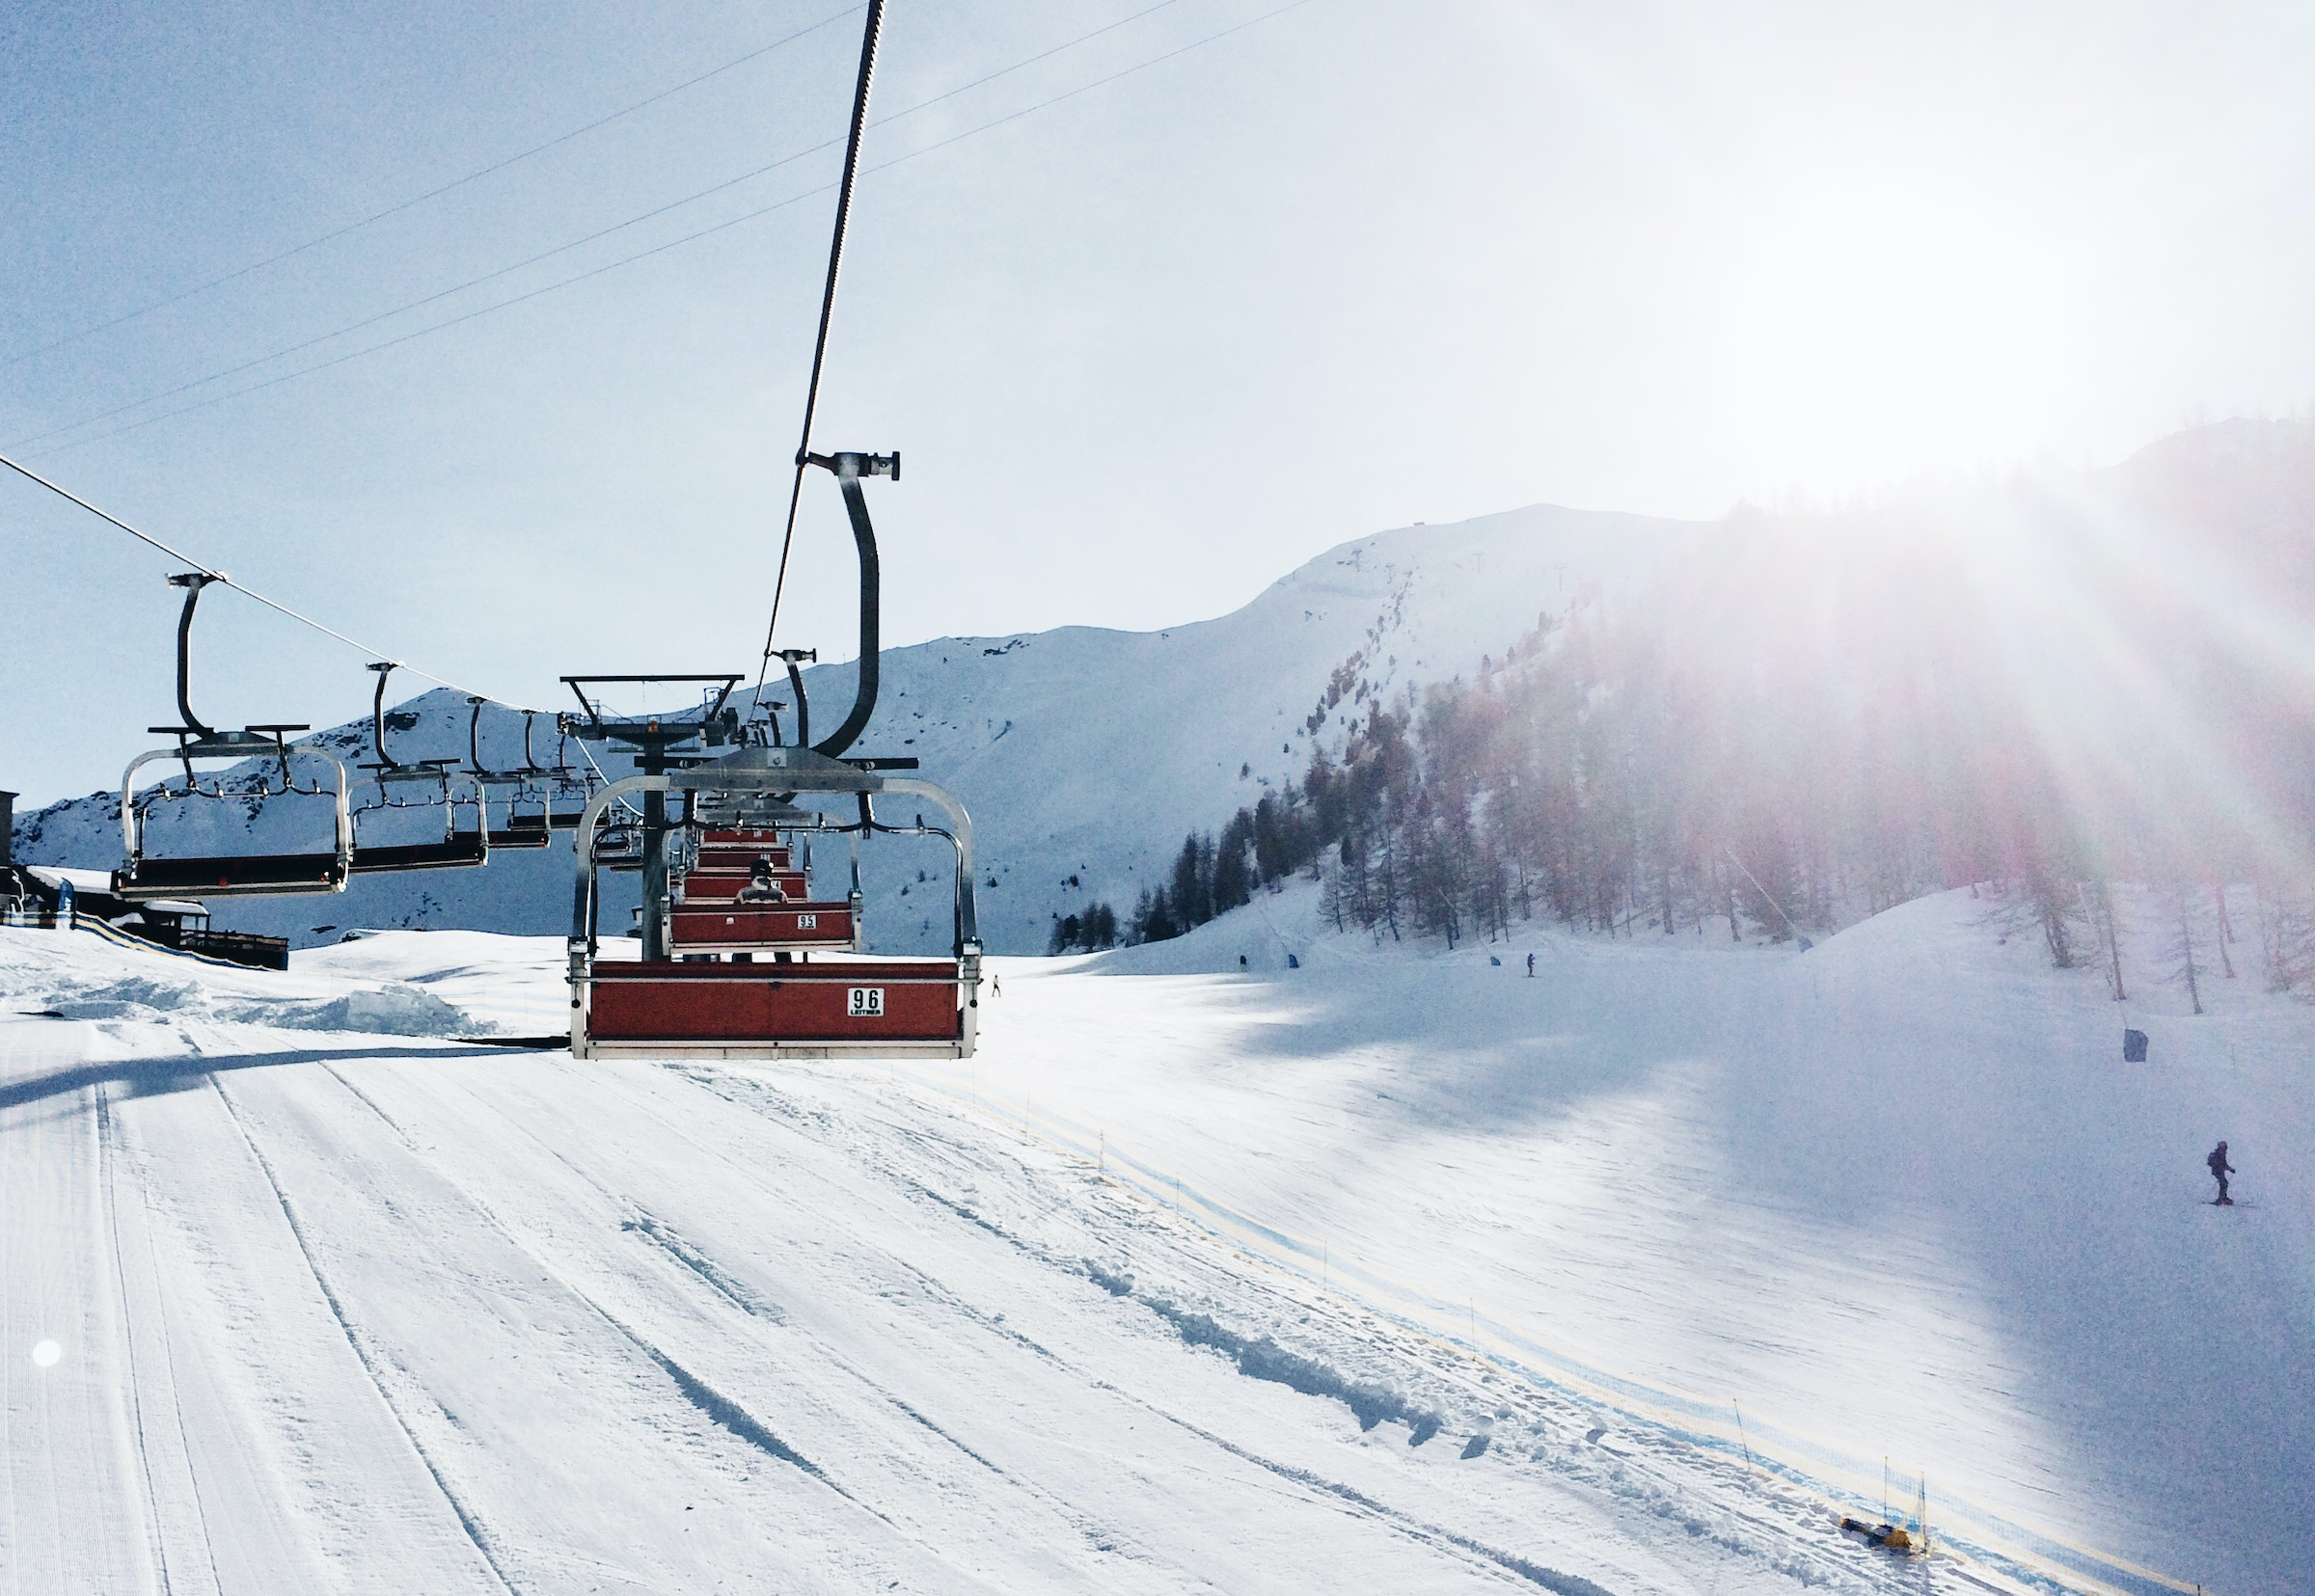 view of chairlift in Italian Alps